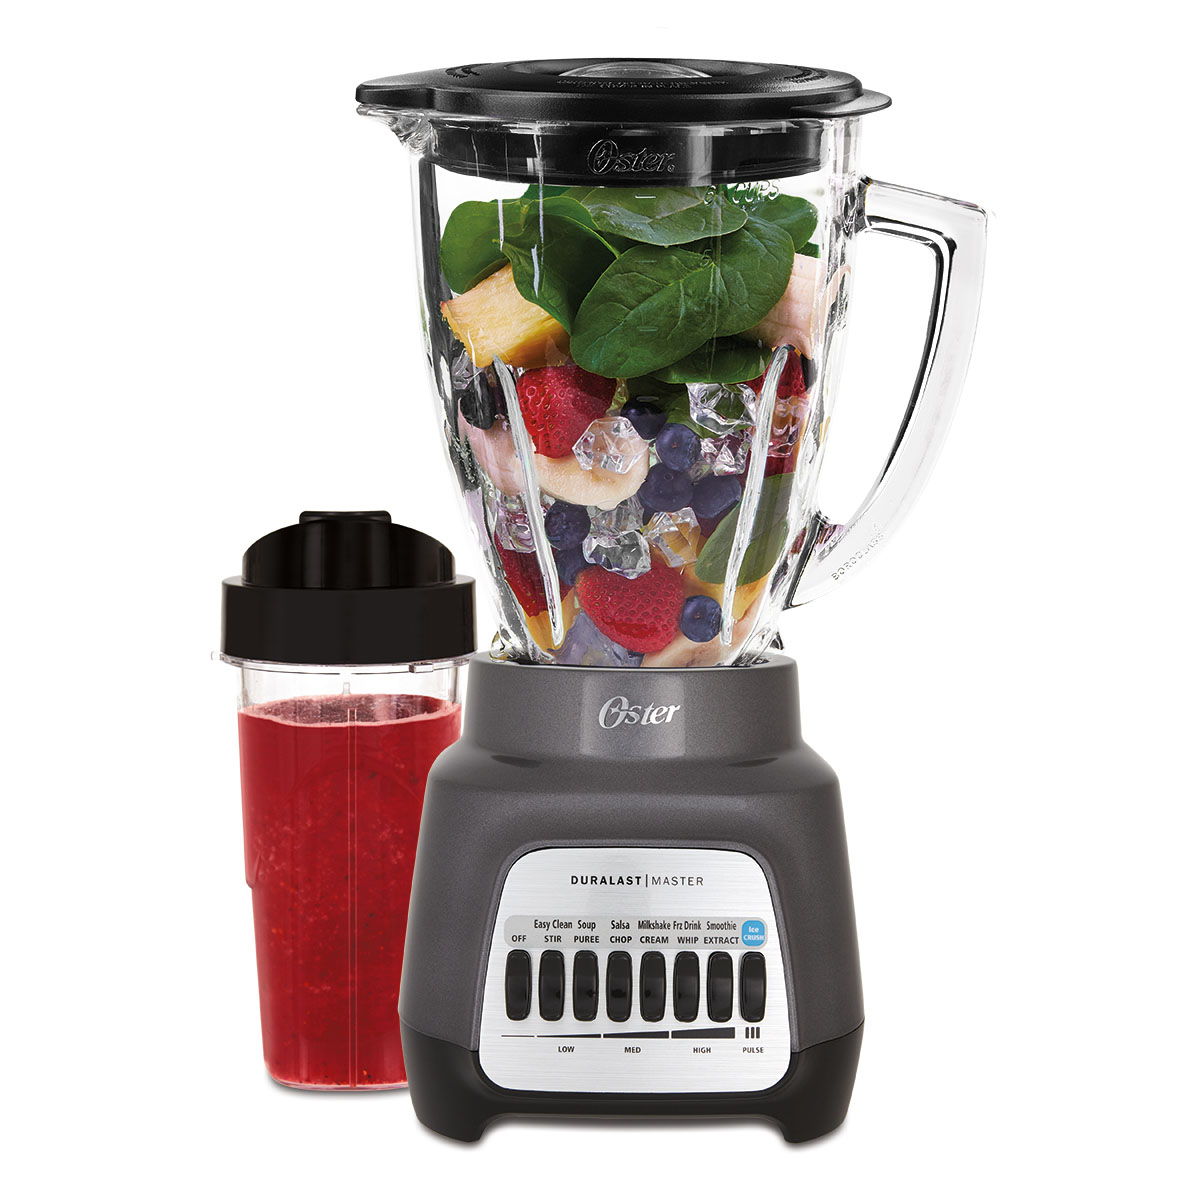 Oster 7-Speed Nutrition On The Go Blender, Black (BLSTJJ-GPB-000)